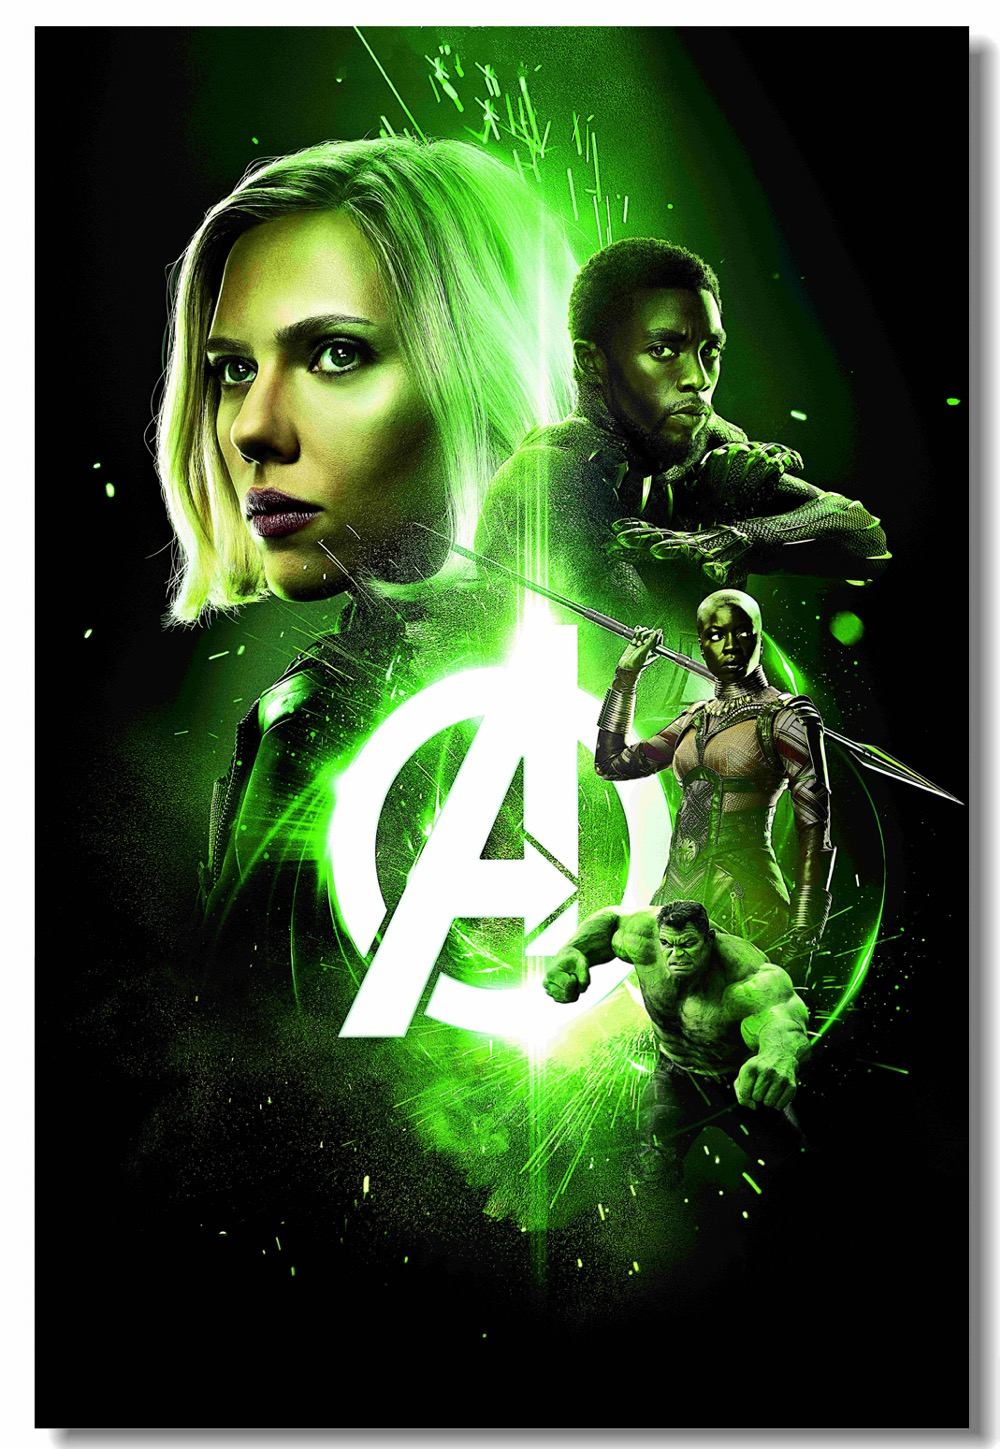 Us 5 99 25 Off Custom Canvas Wall Decal Avengers Infinity War Poster Black Widow Hulk Wall Sticker Black Panther Thor Star Lord Wallpaper 0329 In